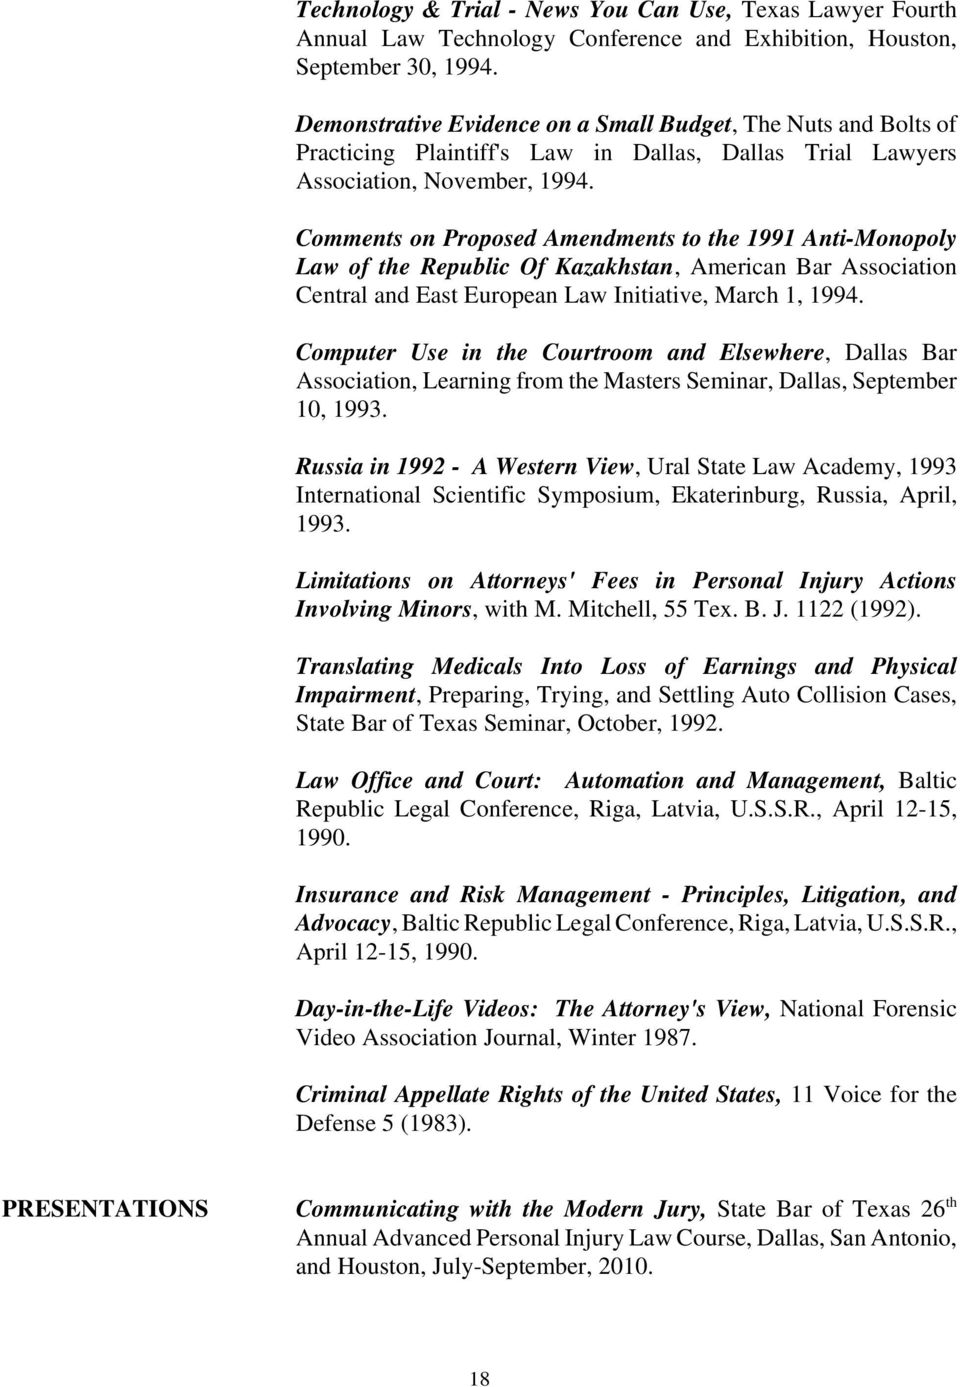 Comments on Proposed Amendments to the 1991 Anti-Monopoly Law of the Republic Of Kazakhstan, American Bar Association Central and East European Law Initiative, March 1, 1994.